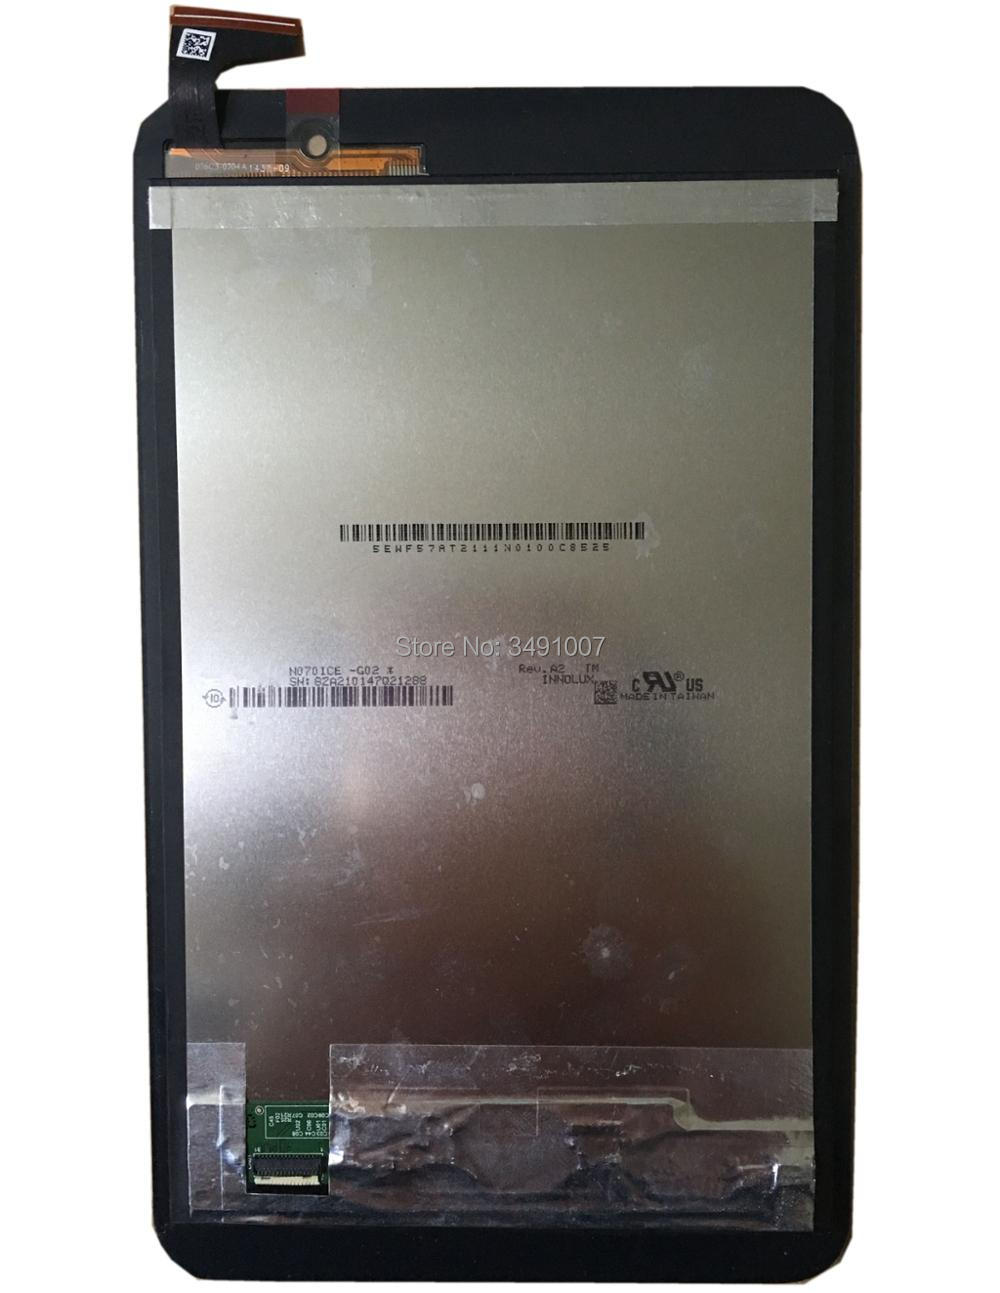 LCD LED Touch Screen Digitizer Assembly with Frame For Asus Memo Pad 7 ME176 ME176C ME176CX K013 new 8 inch for asus memo pad 8 me180 me180a digitizer touch screen with lcd display assembly frame